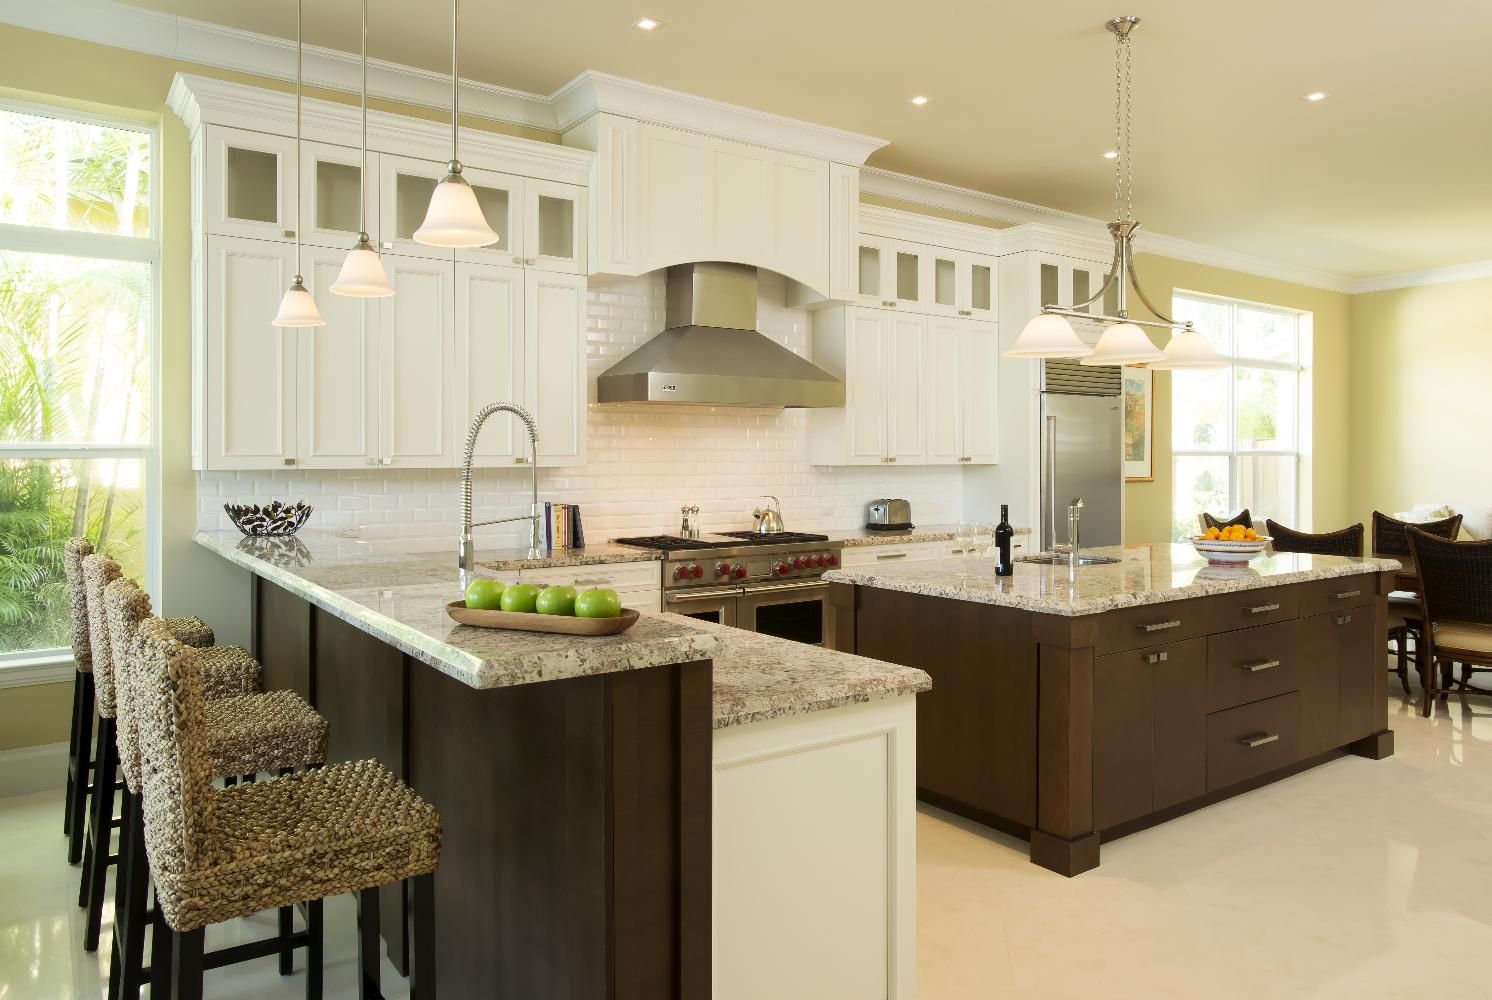 Pin On Cabinetry With Environmental Conscience And Style